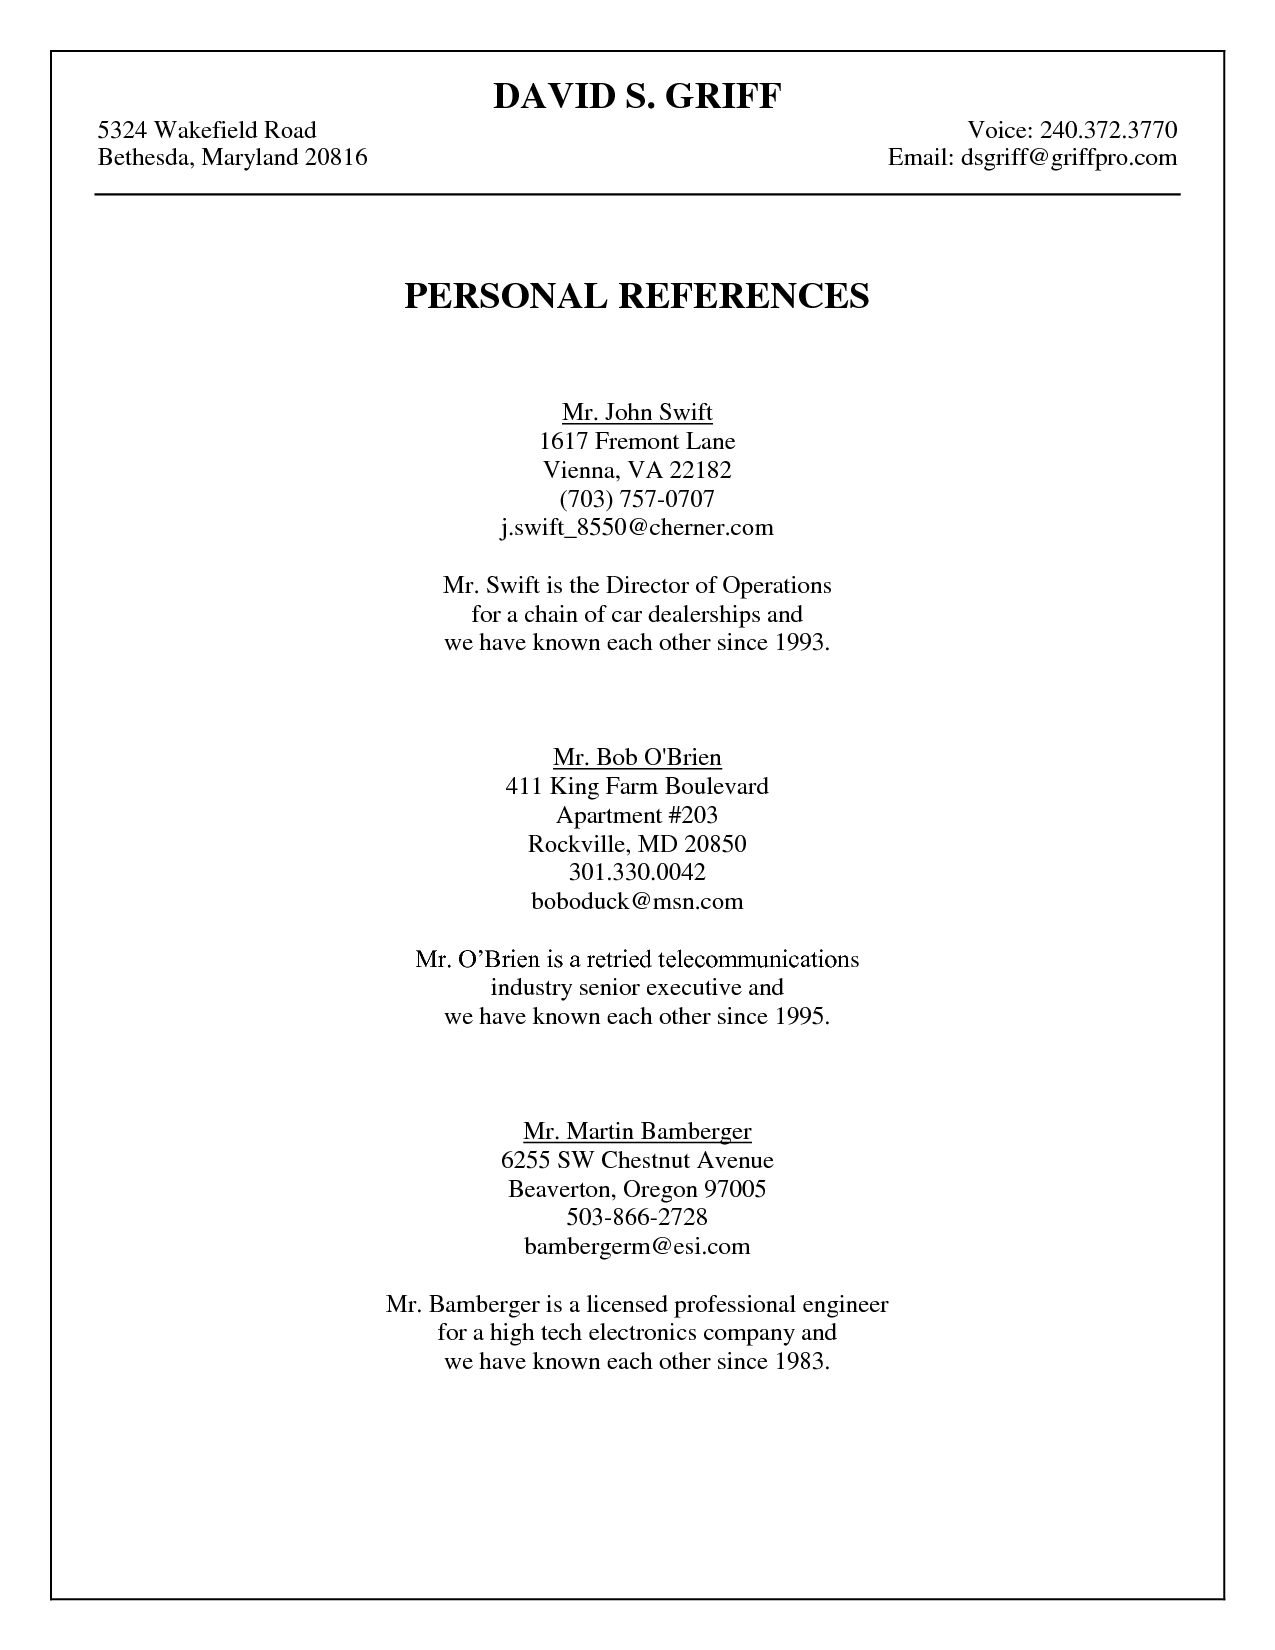 resume sample with personal references